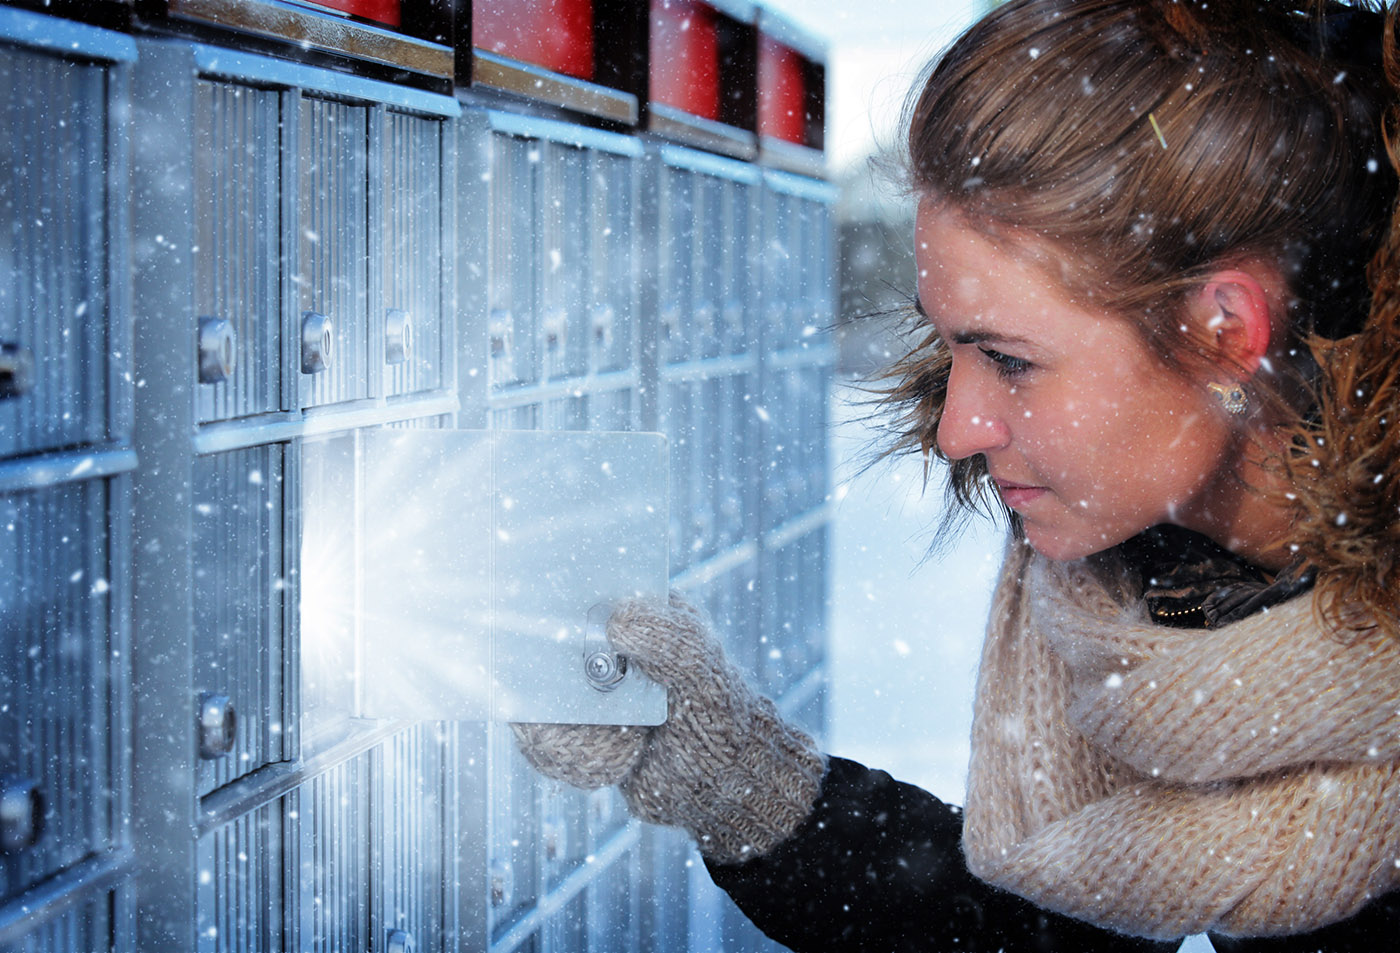 Pretty Woman Looking at Highlighted Mailbox in Winter - stock photos and royalty-free images